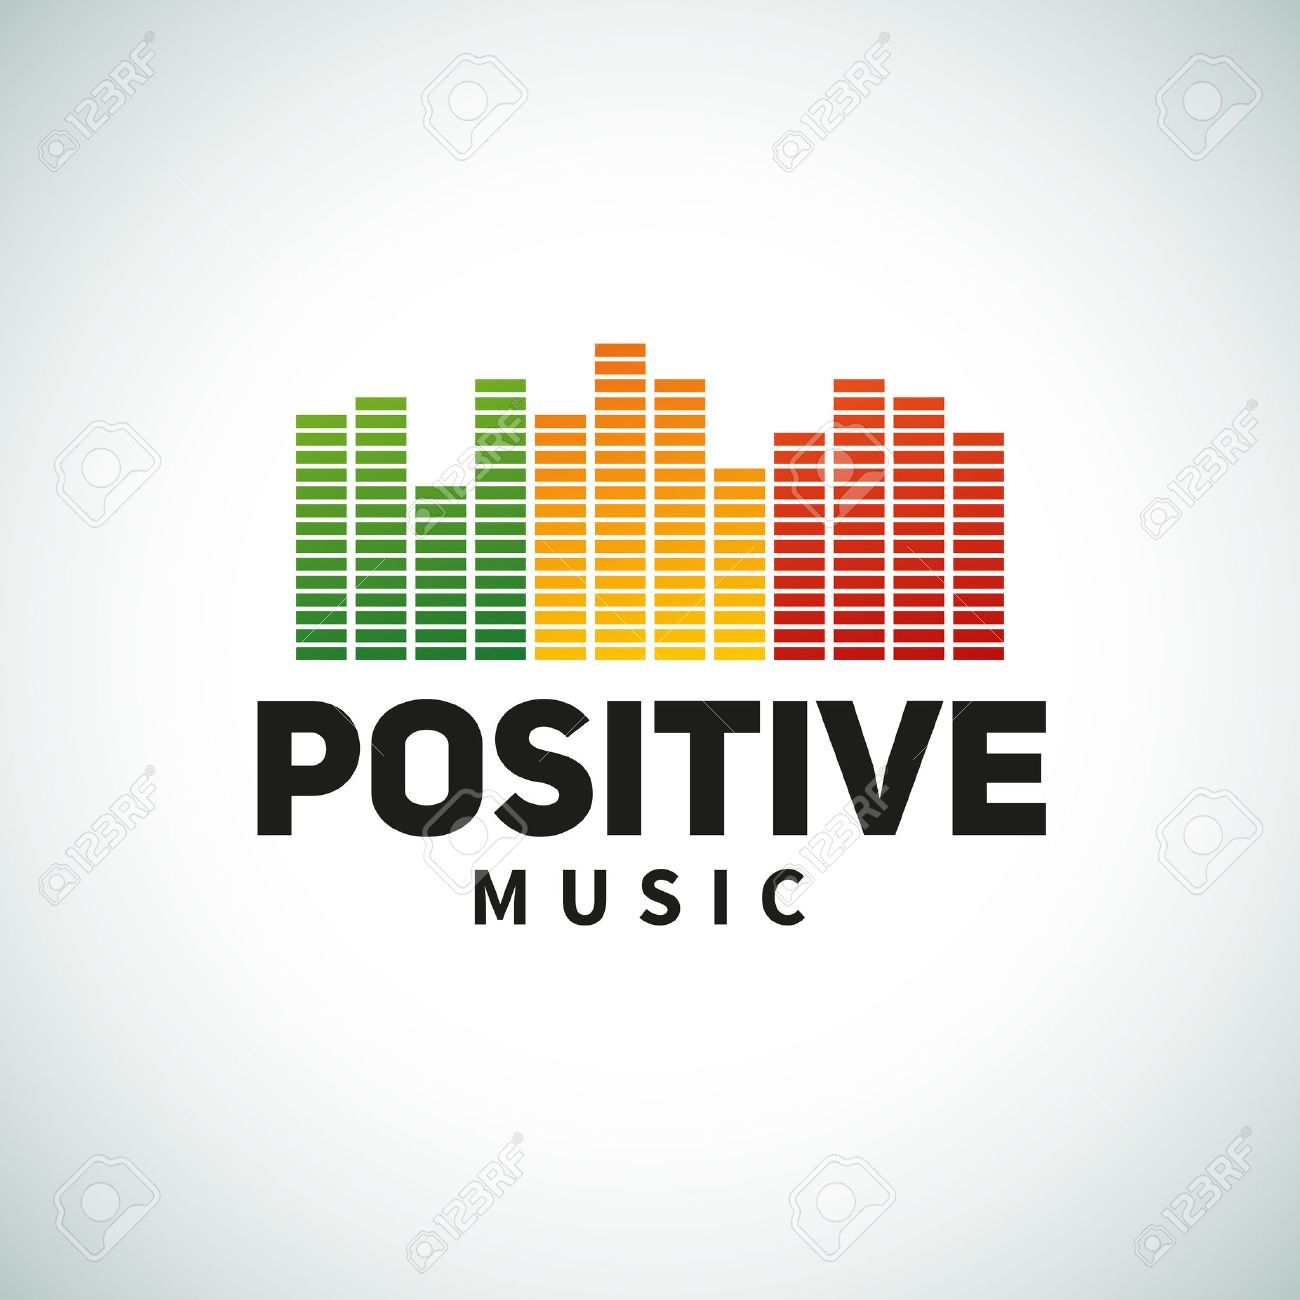 Reggae music equalizer logo emblem vector design  Positive dub